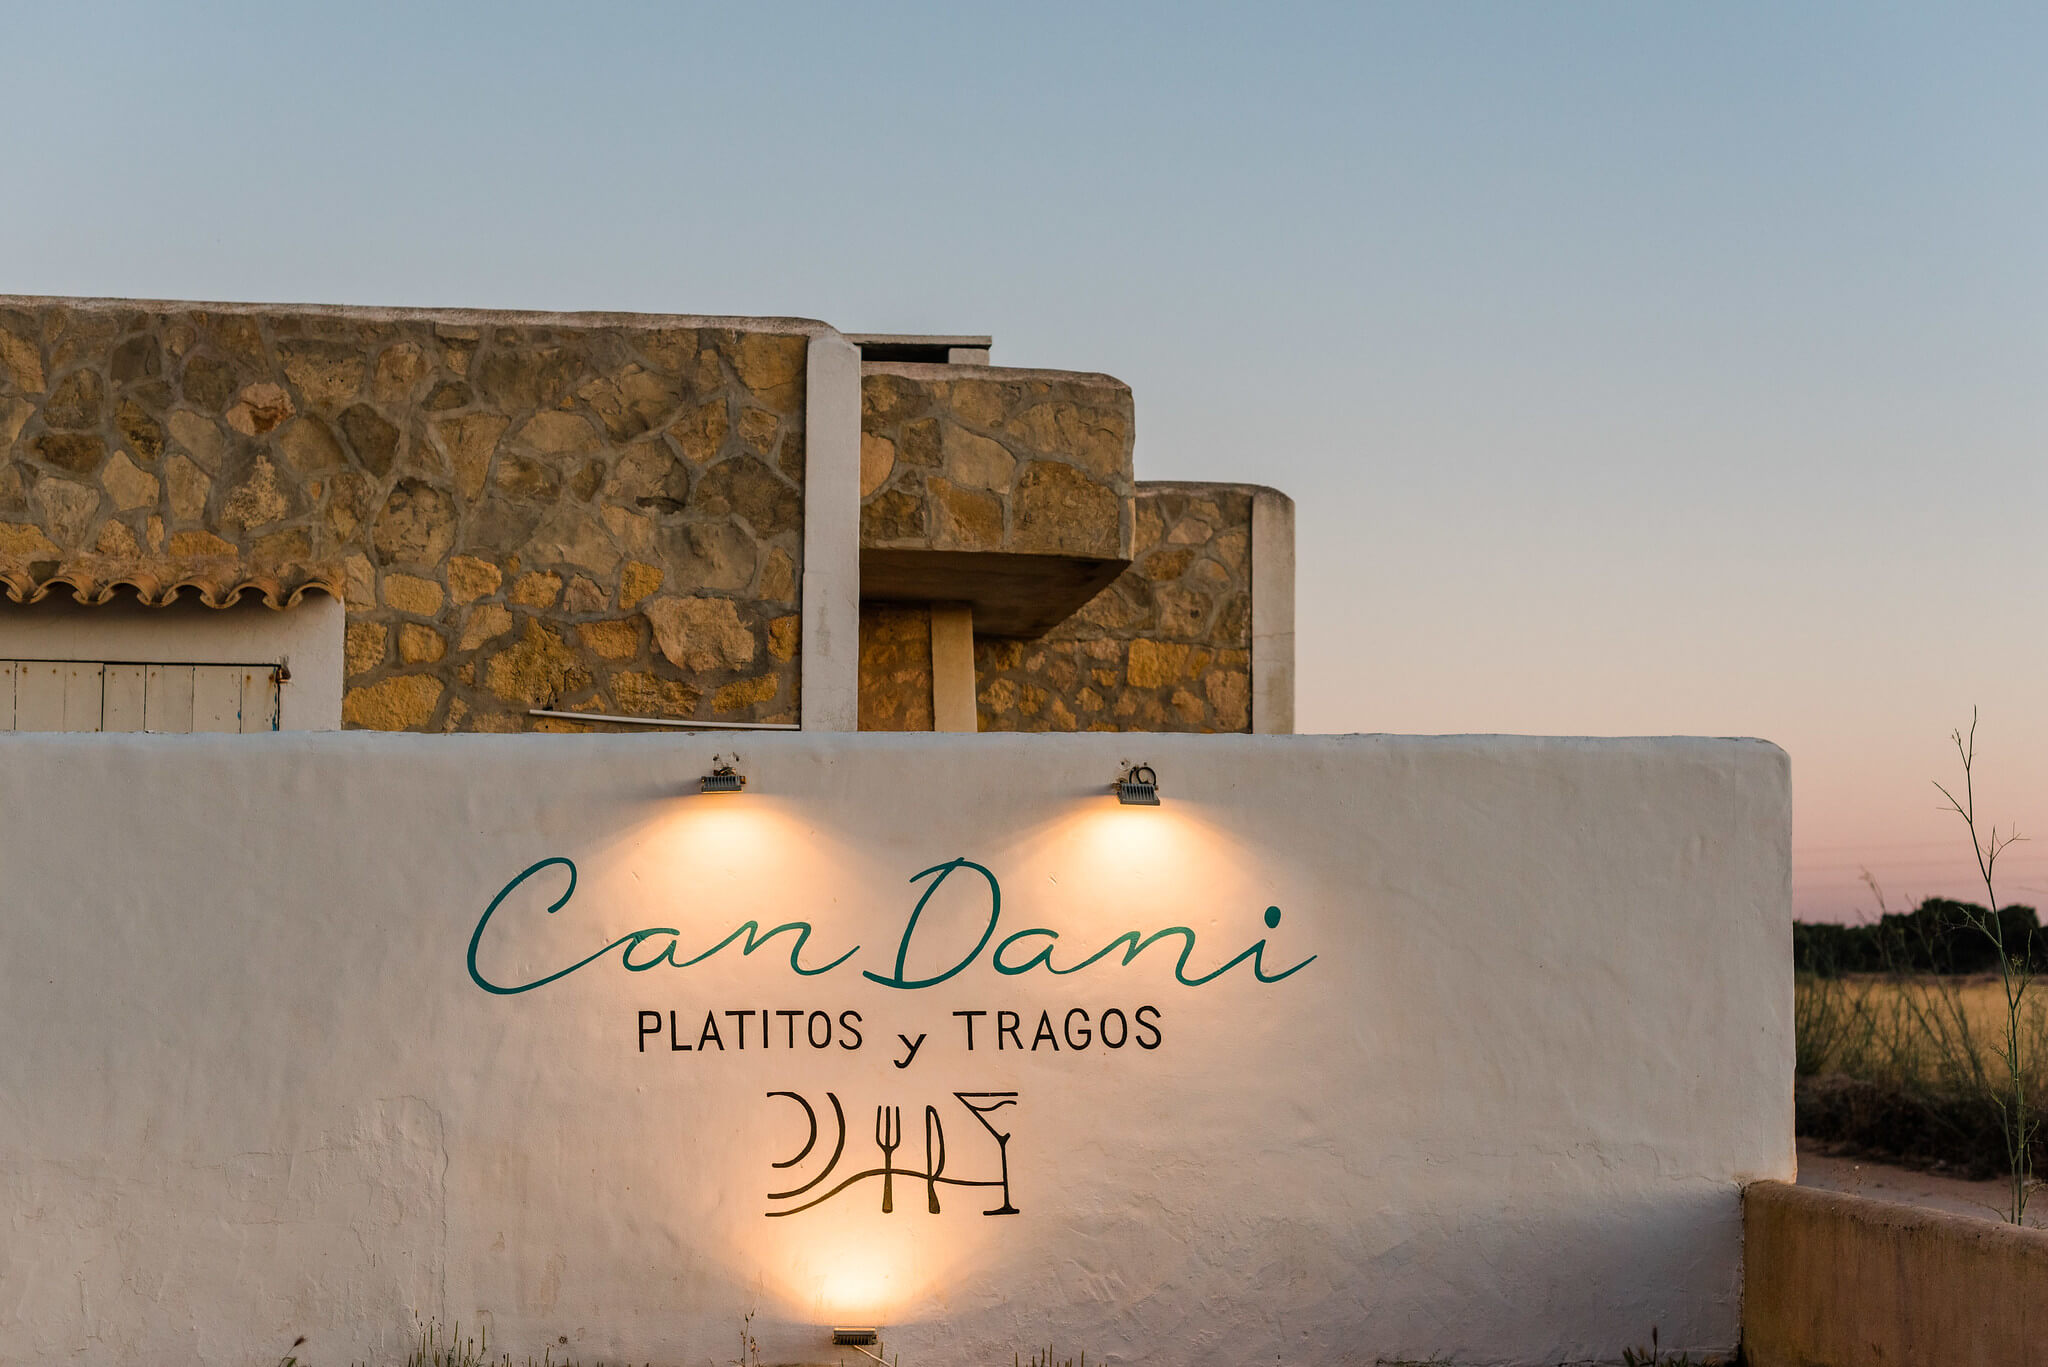 https://www.white-ibiza.com/wp-content/uploads/2020/03/formentera-restaurants-can-dani-2020-02.jpg